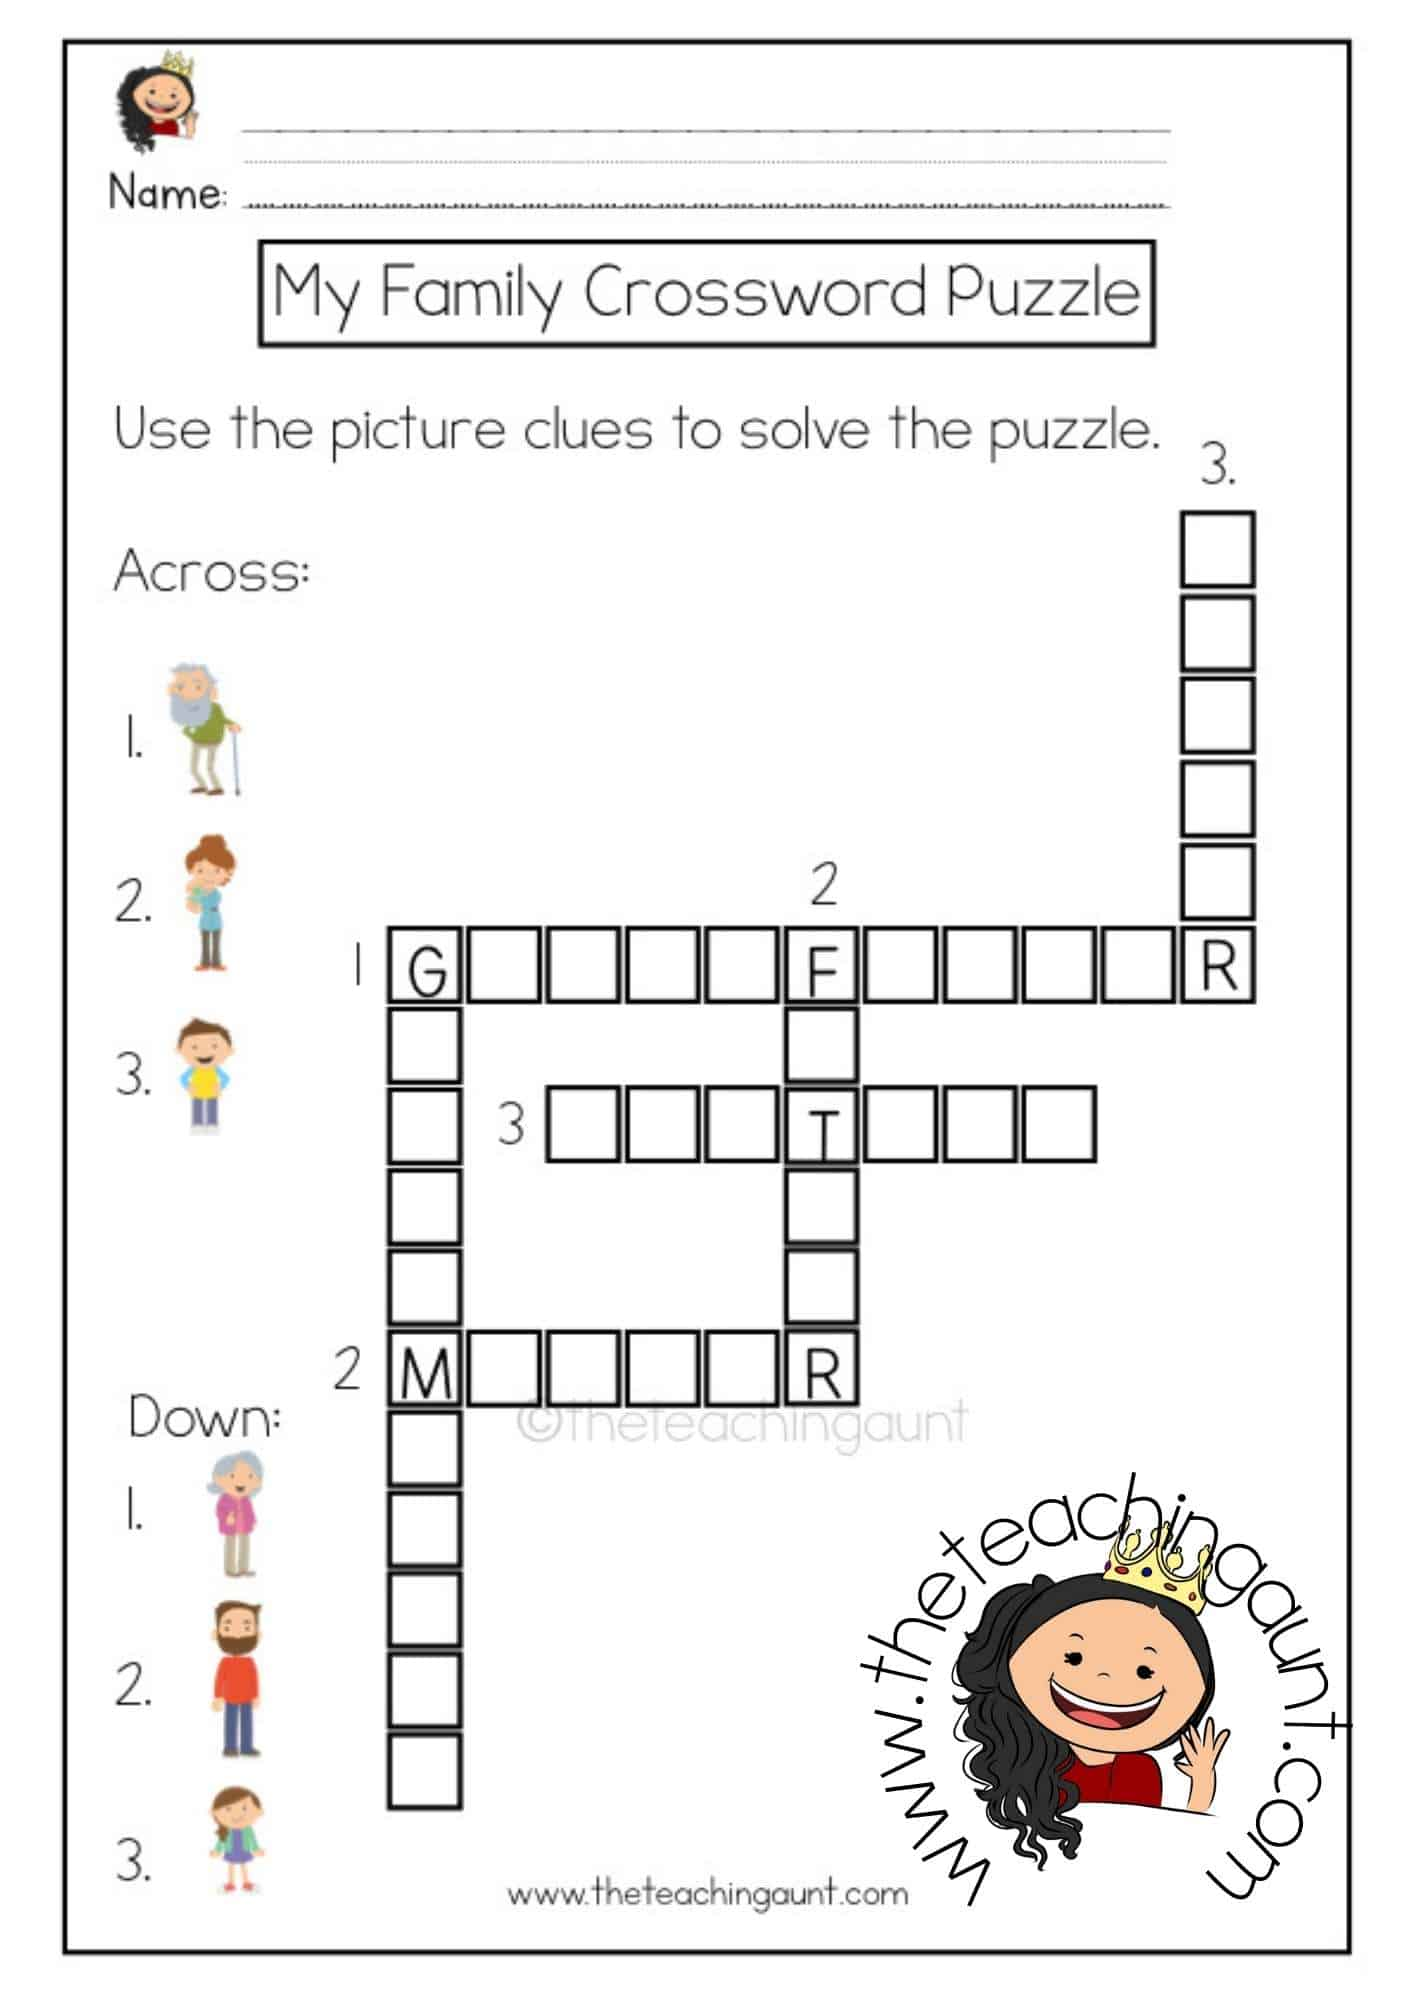 Free Family Members Crossword Puzzle Worksheet from The Teaching Aunt